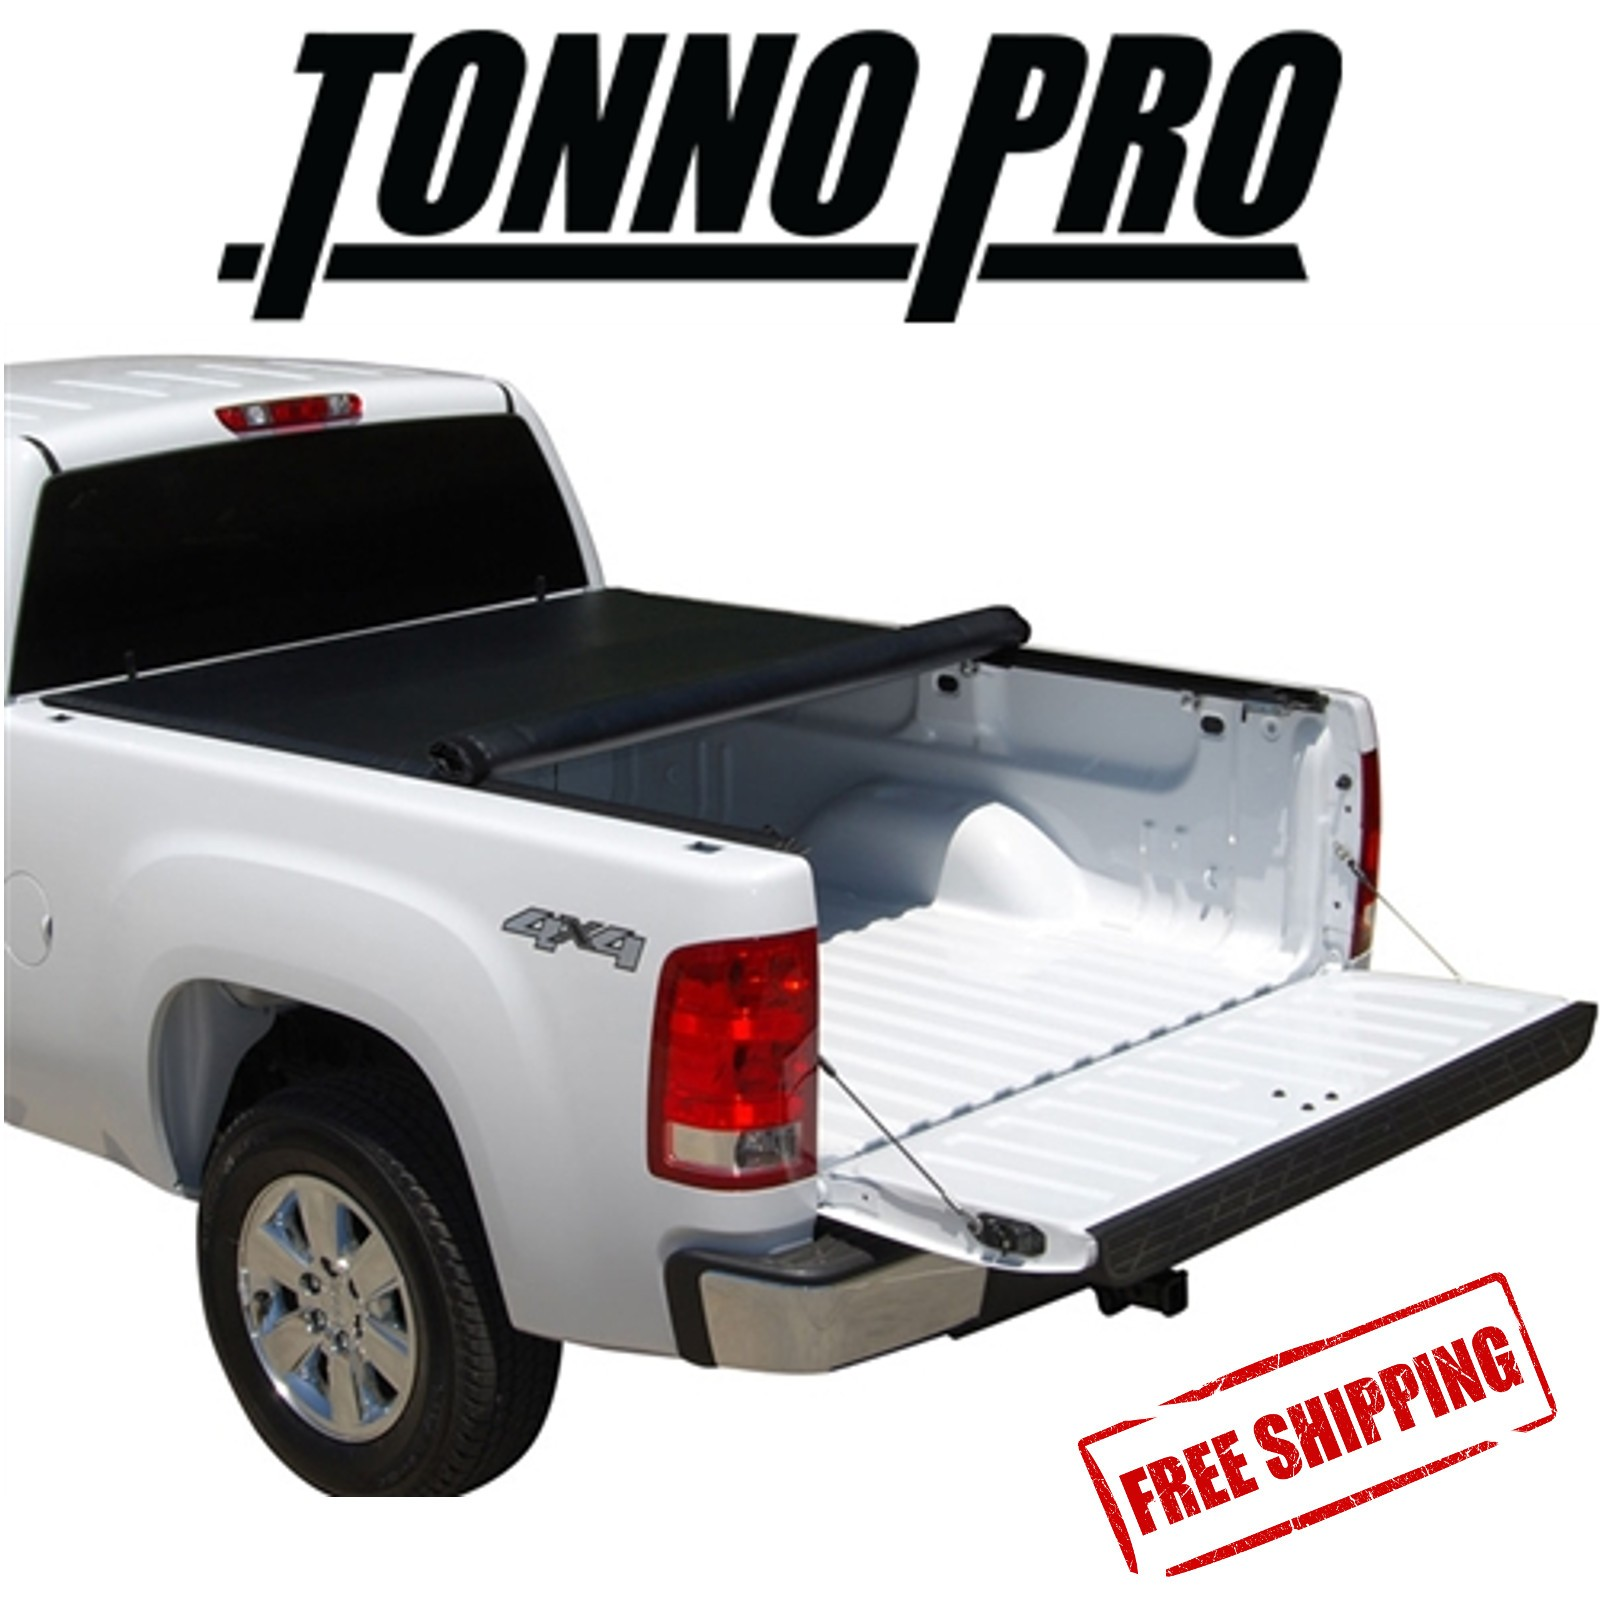 Toyota Tundra Bed Cover >> Details About Tonno Pro Lo Roll Soft Tonneau Cover Fits 2007 2017 Toyota Tundra 5 5 Bed